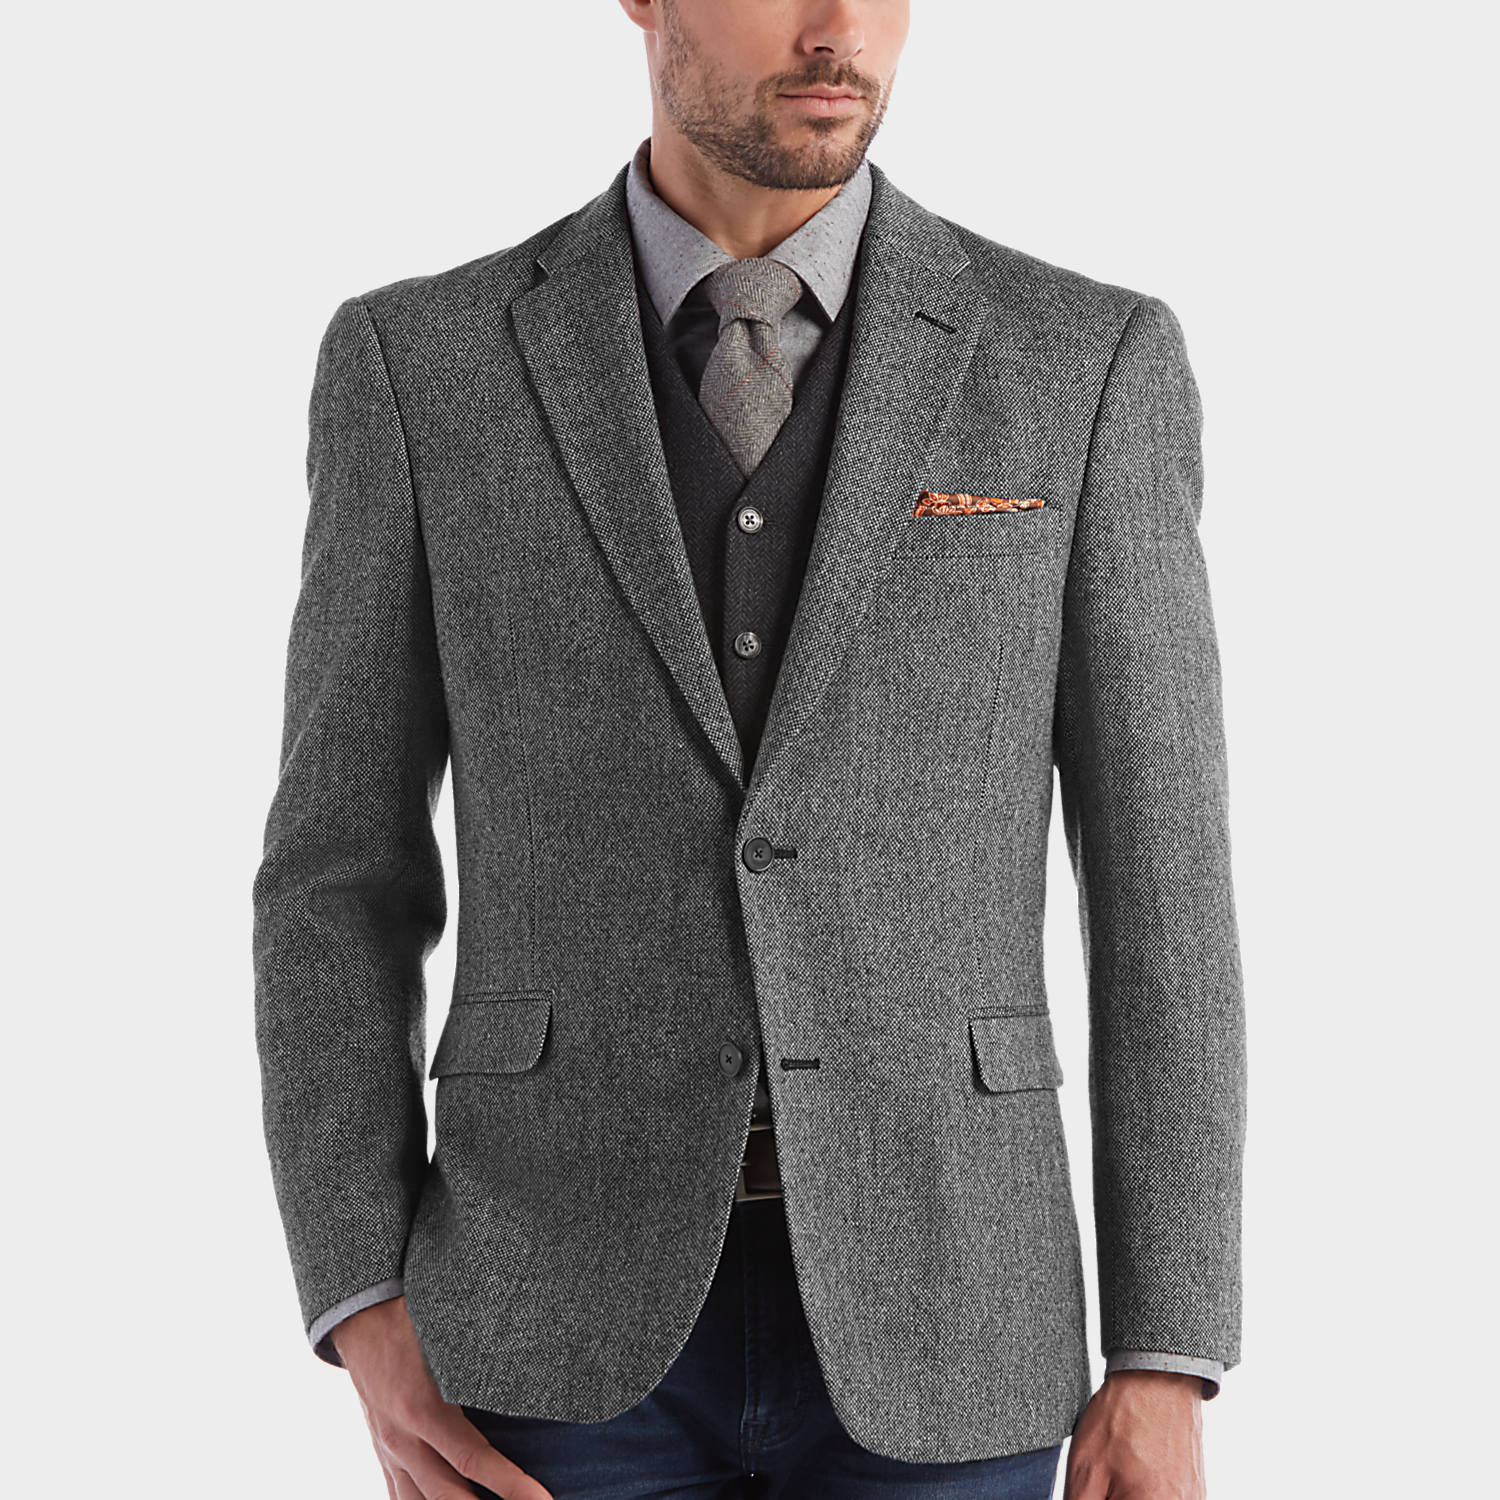 Tommy Hilfiger Black & White Tweed Slim Fit Sport Coat - Men's ...